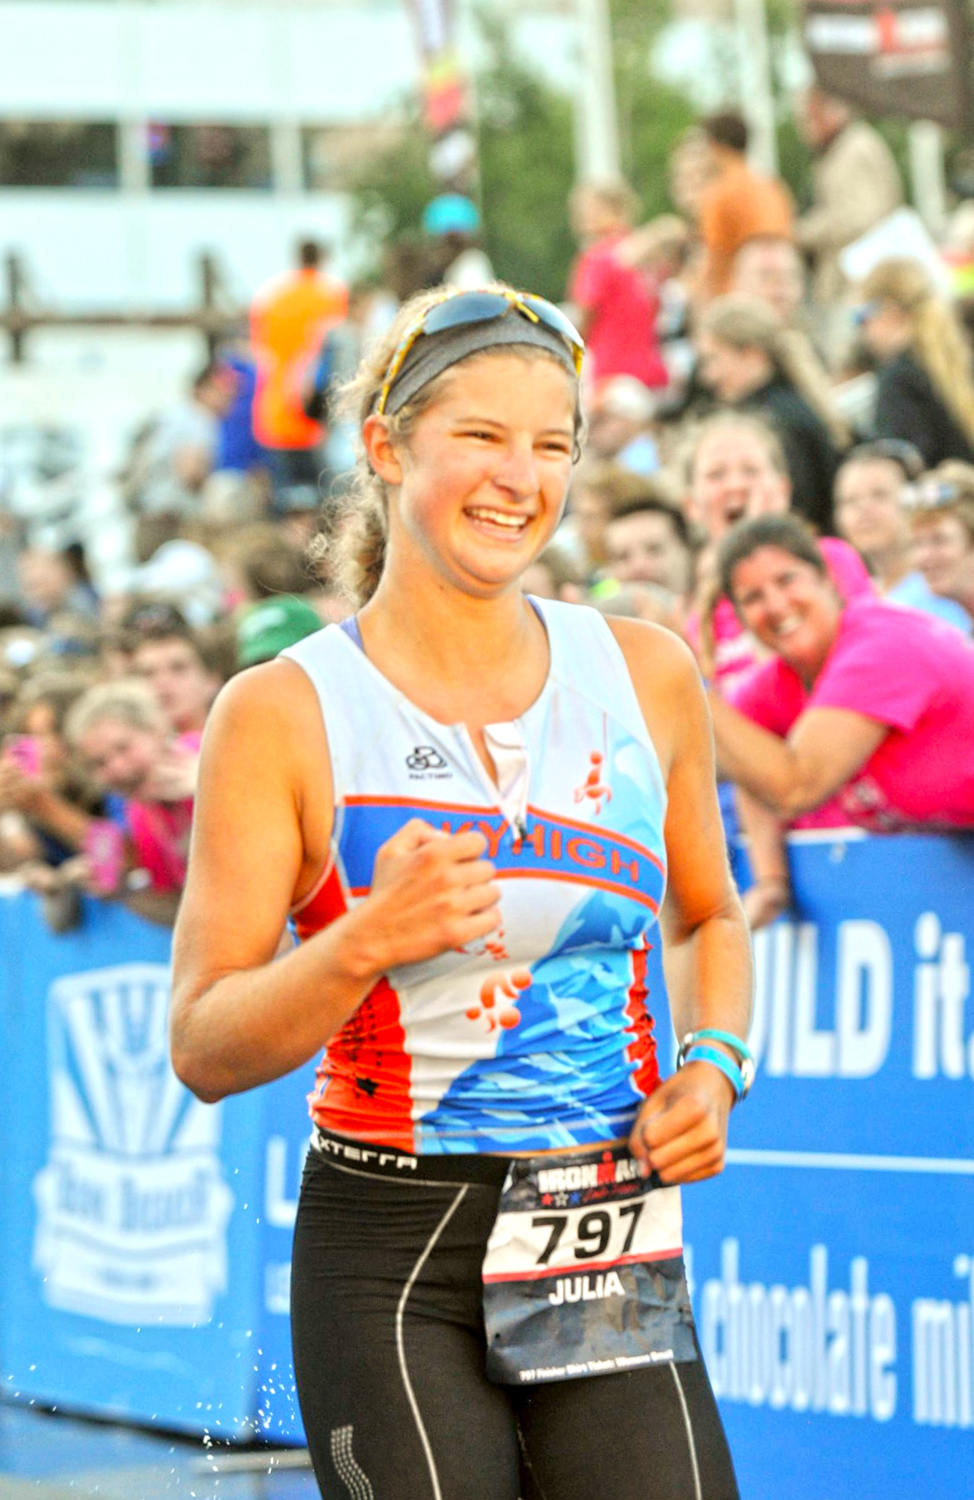 Julia at 2014 Ironman Lake Placid finish.